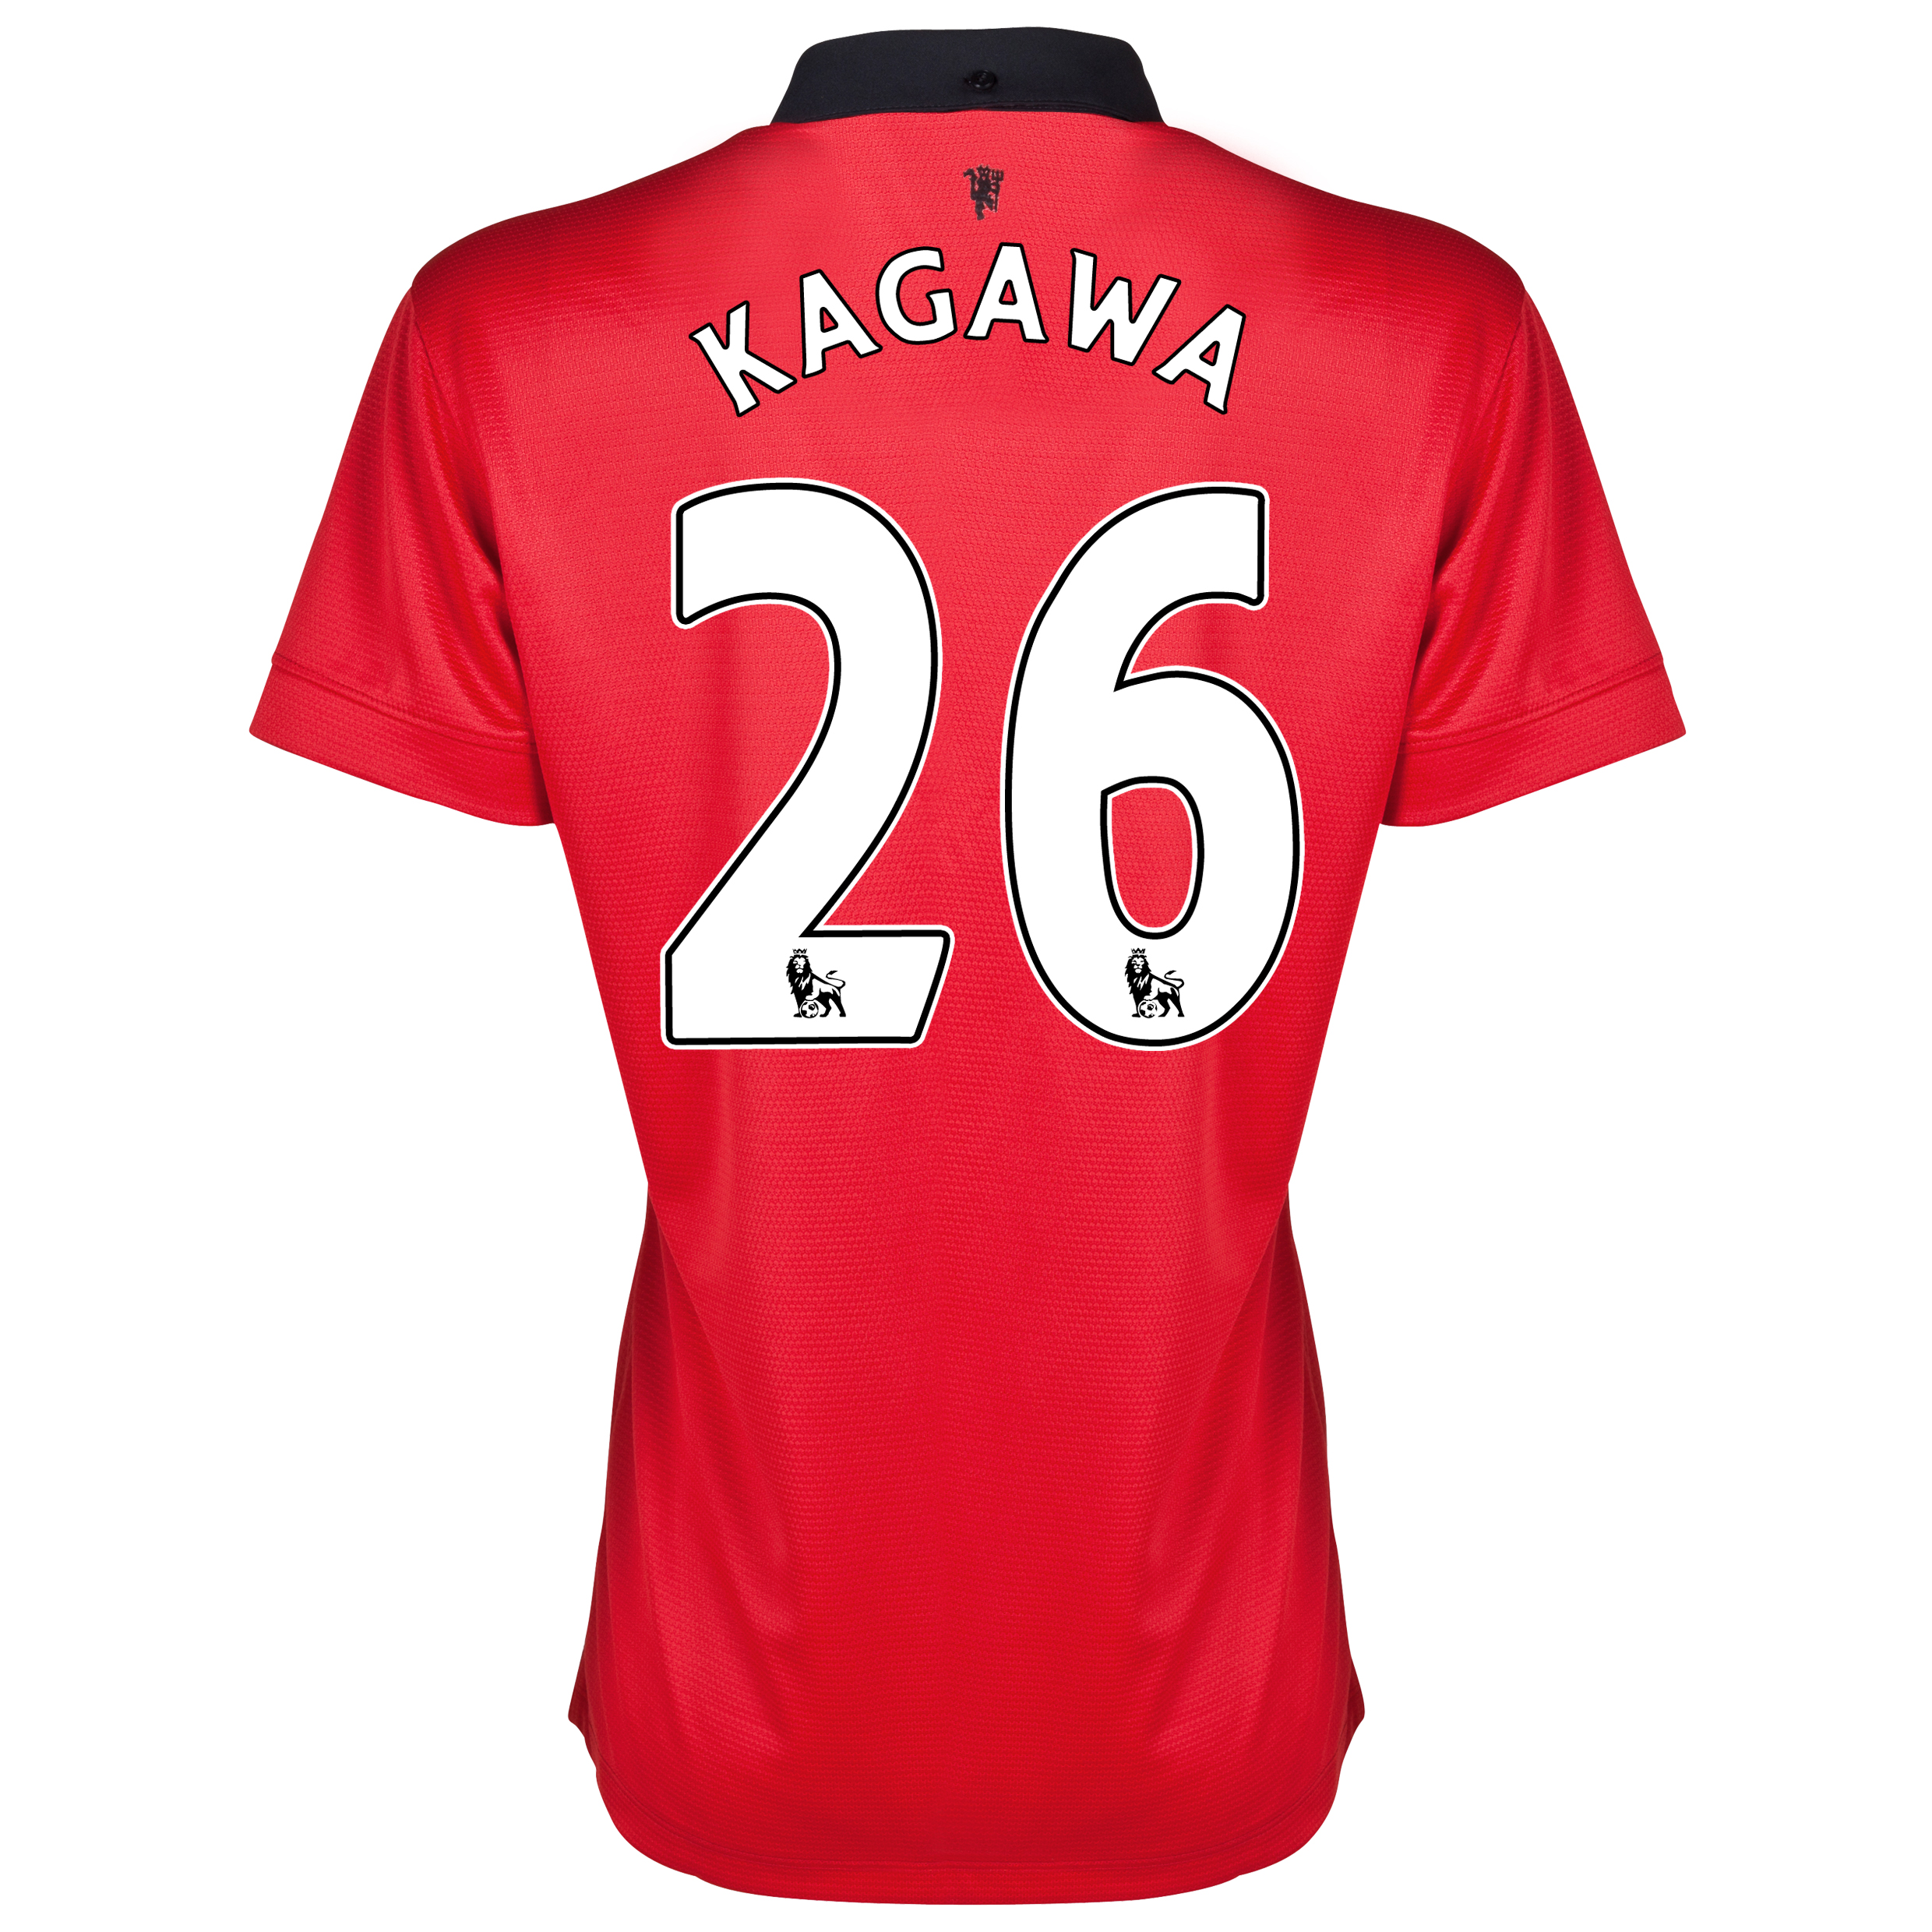 Manchester United Home Shirt 2013/14 - Womens with Kagawa 26 printing